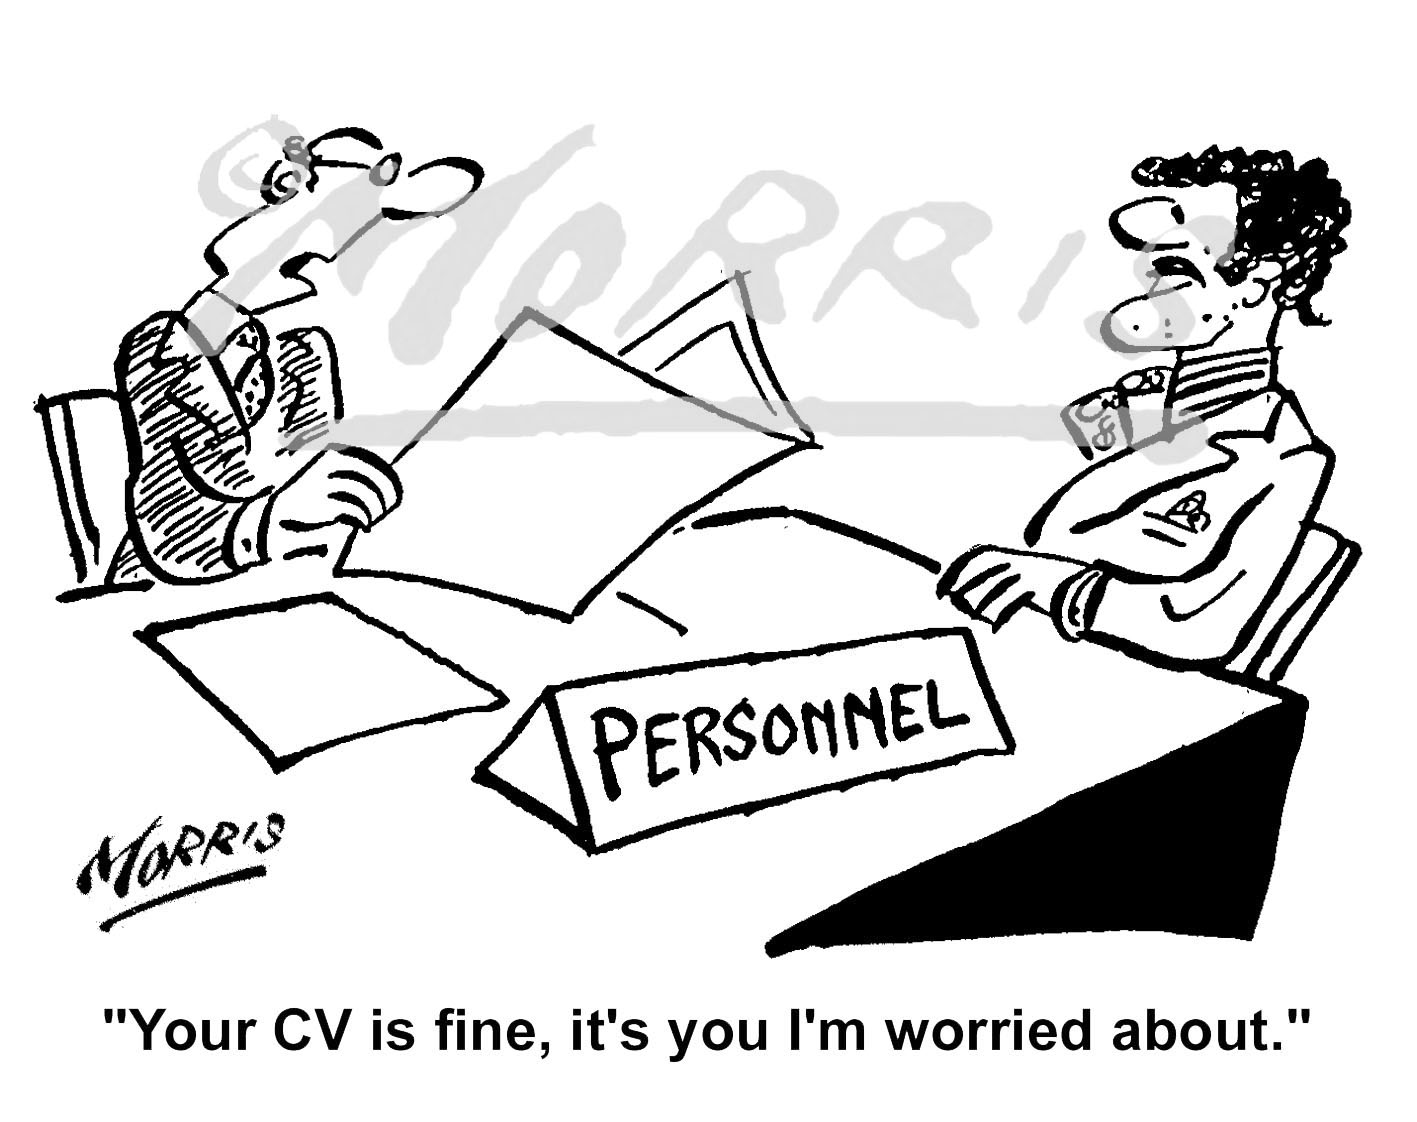 Personnel Manager job CV interview cartoon – Ref: 0719bw